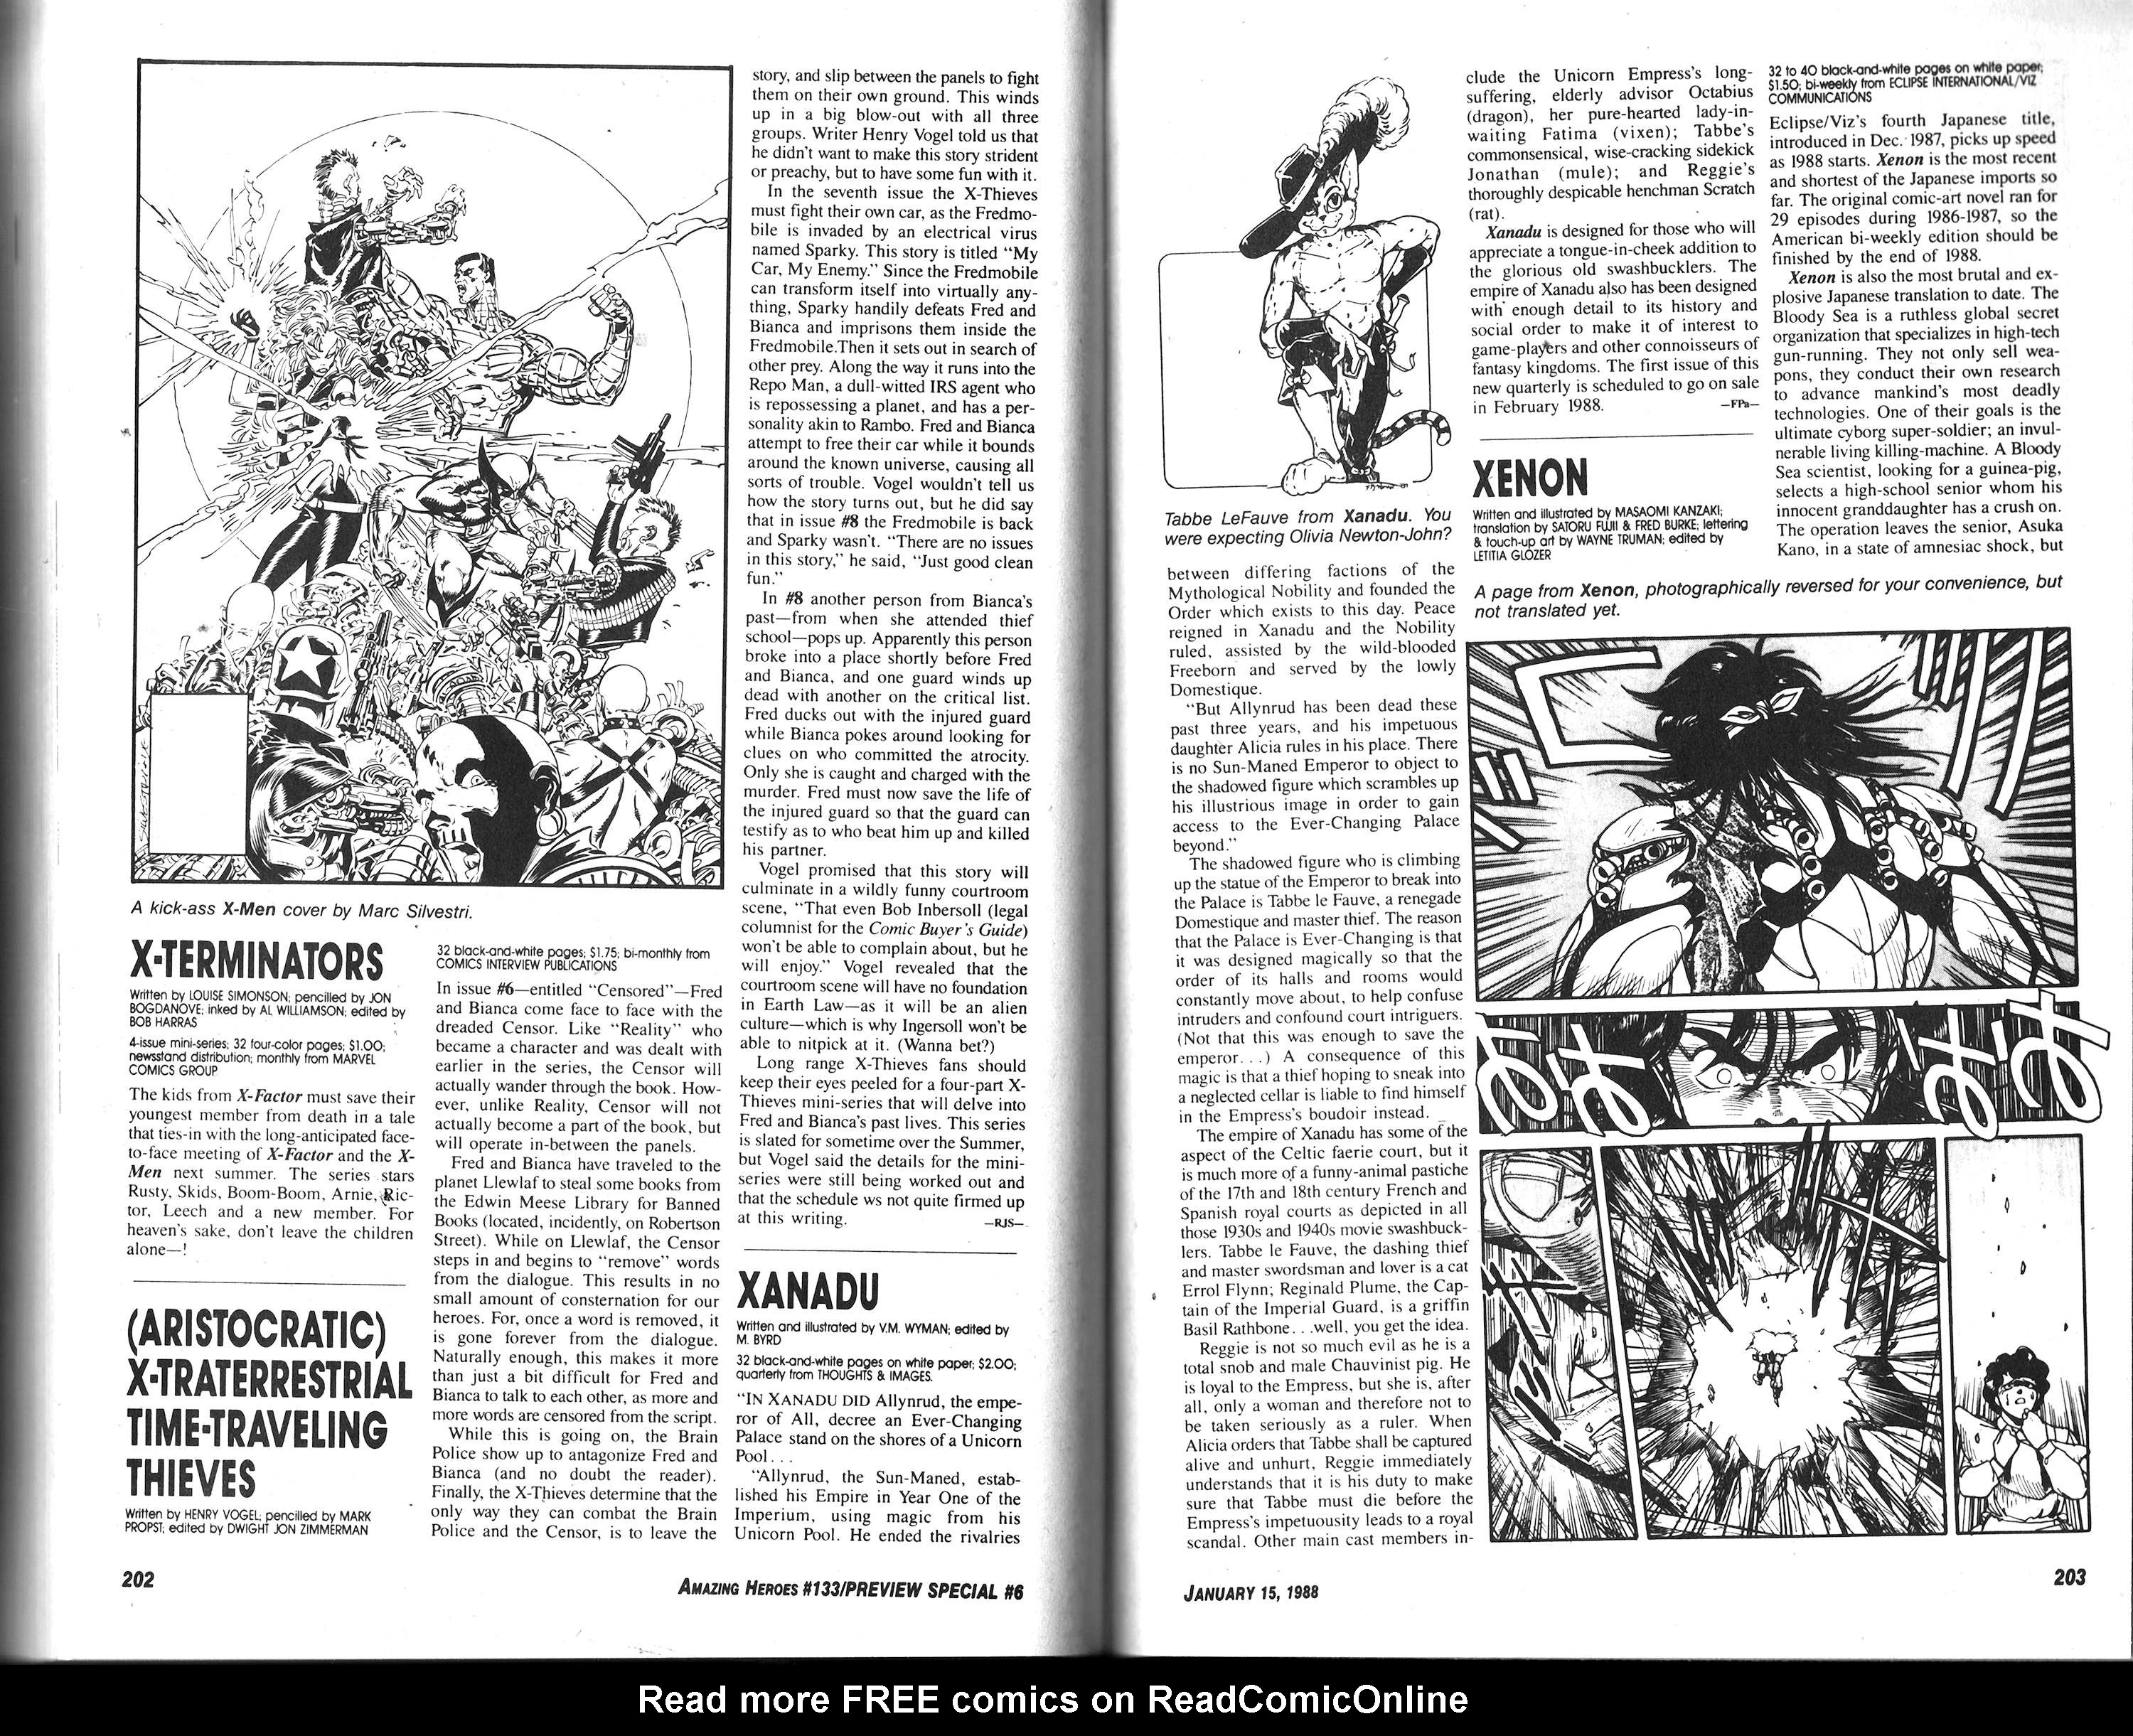 Read online Amazing Heroes comic -  Issue #133 - 103